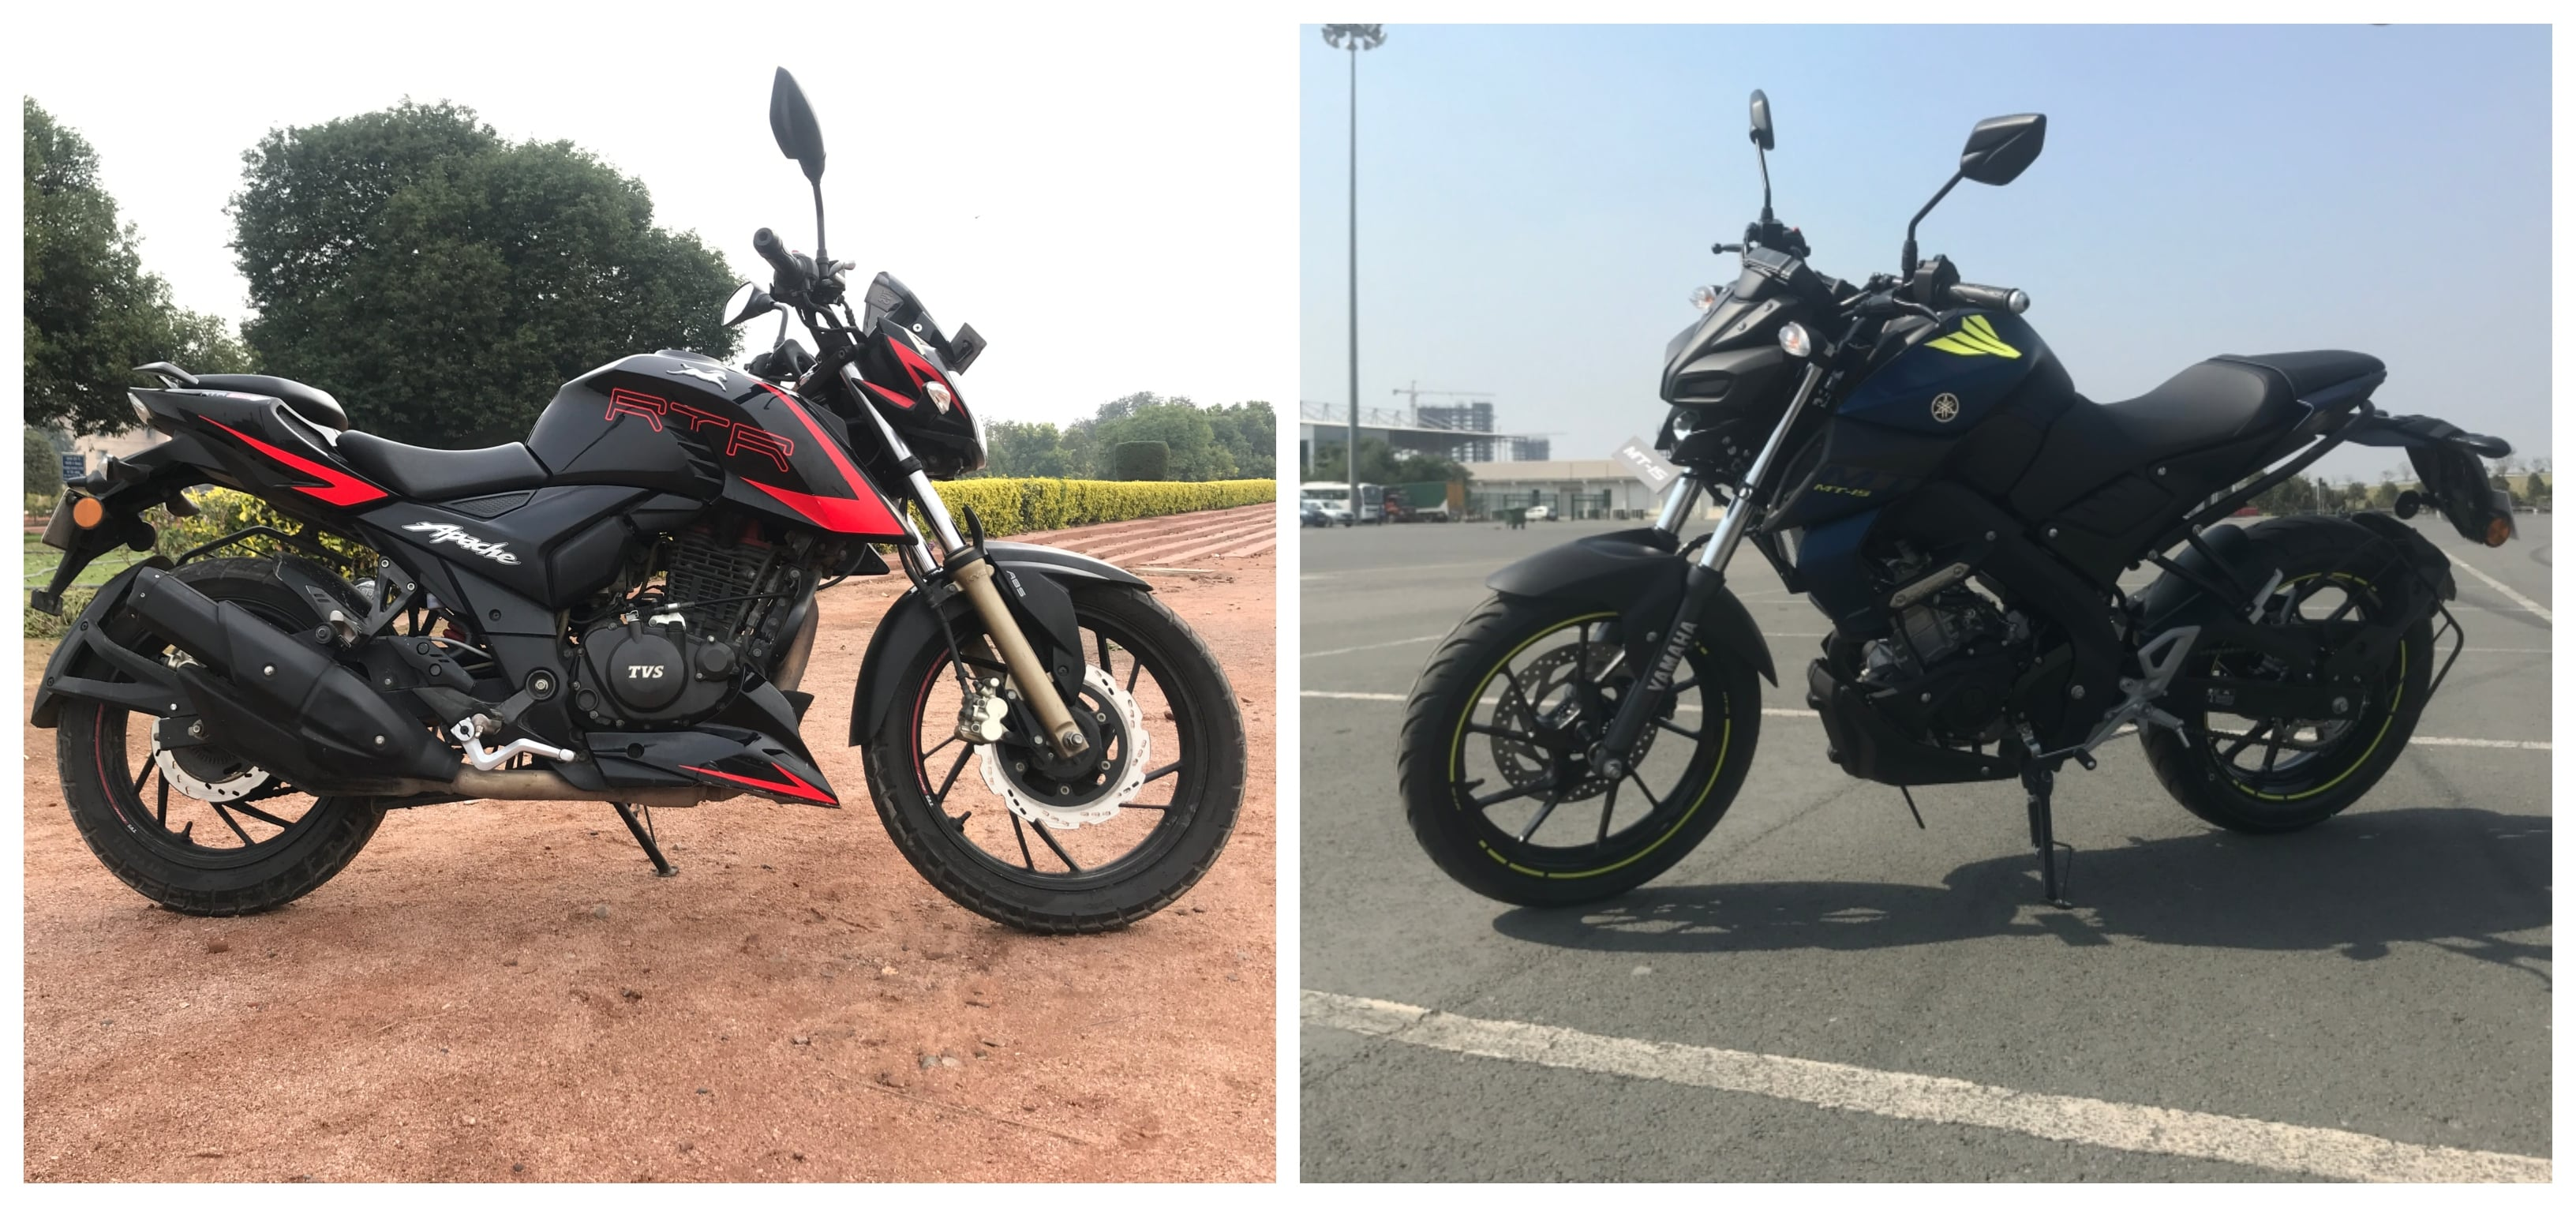 Remarkable Yamaha Mt 15 Vs Tvs Apache Rtr 200 4V Detailed Comparison Gmtry Best Dining Table And Chair Ideas Images Gmtryco